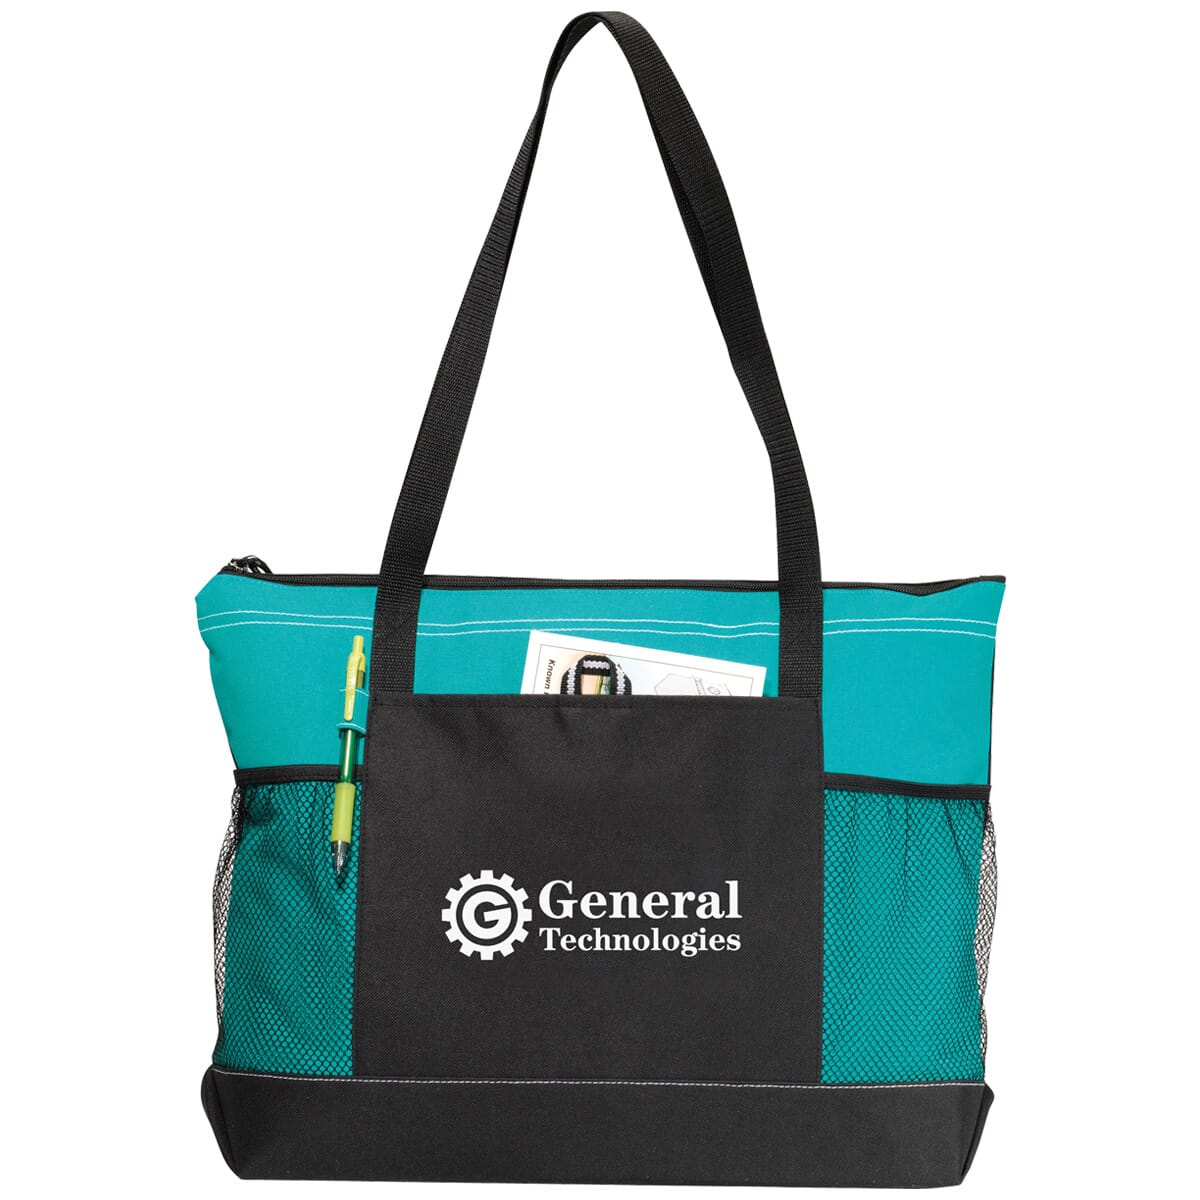 Tote bag with front pocket and side mesh pockets